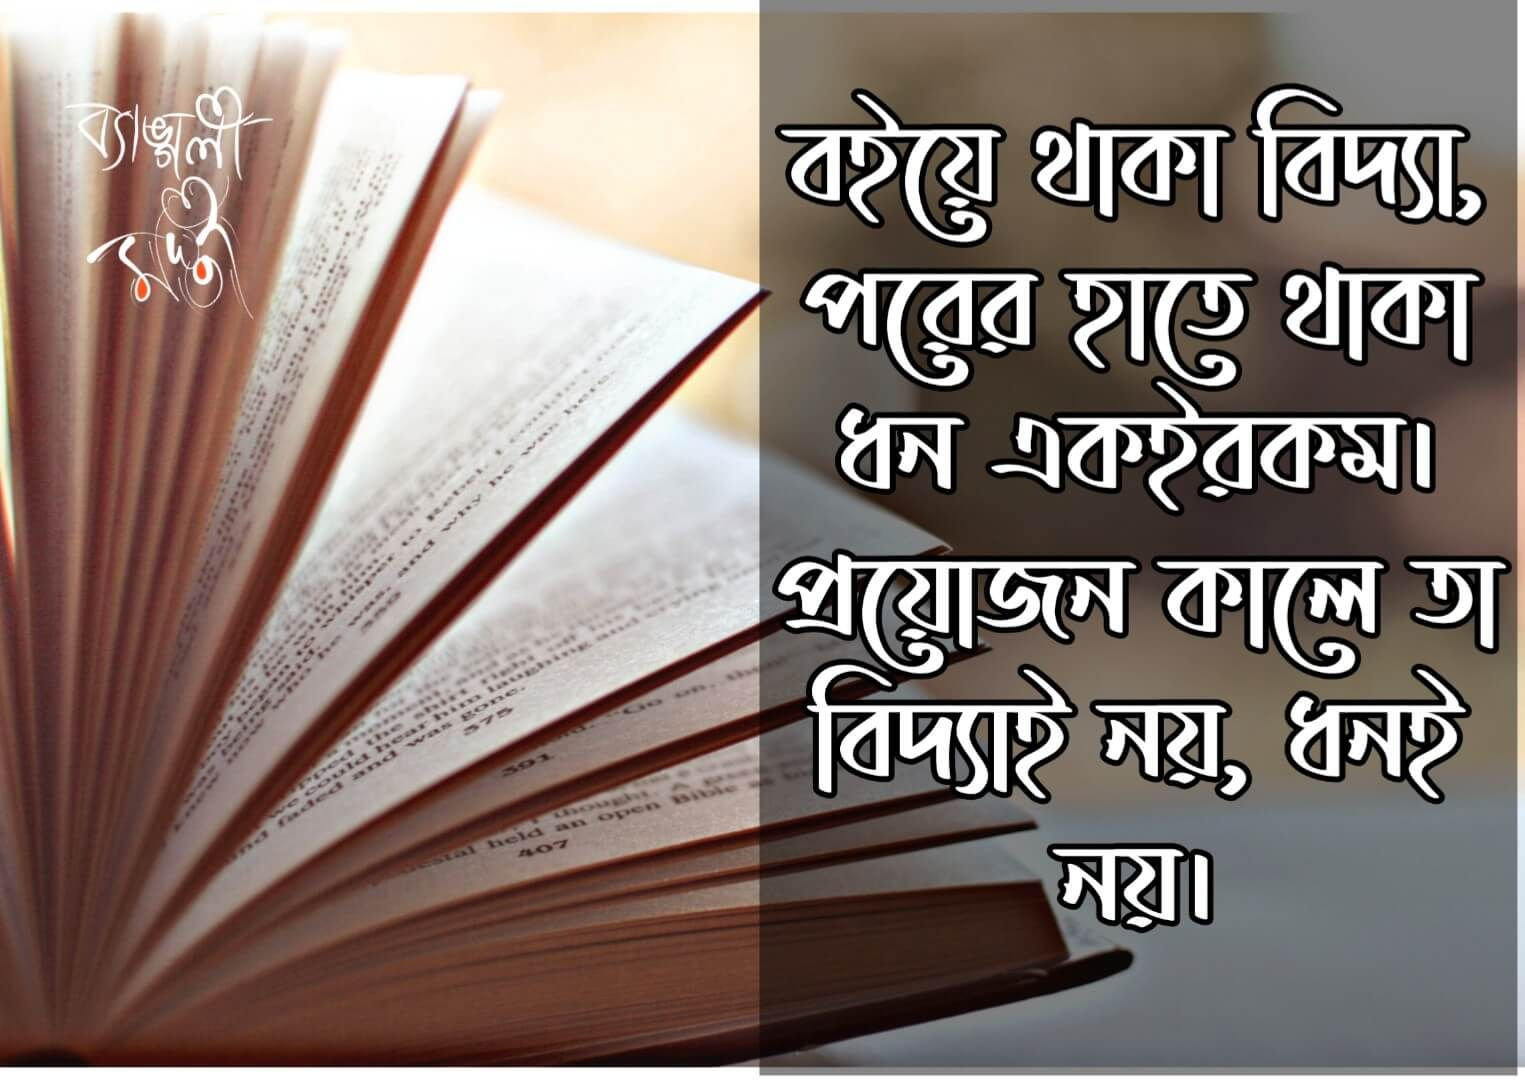 life-changing quotes in Bangla in 3  Life quotes, Life